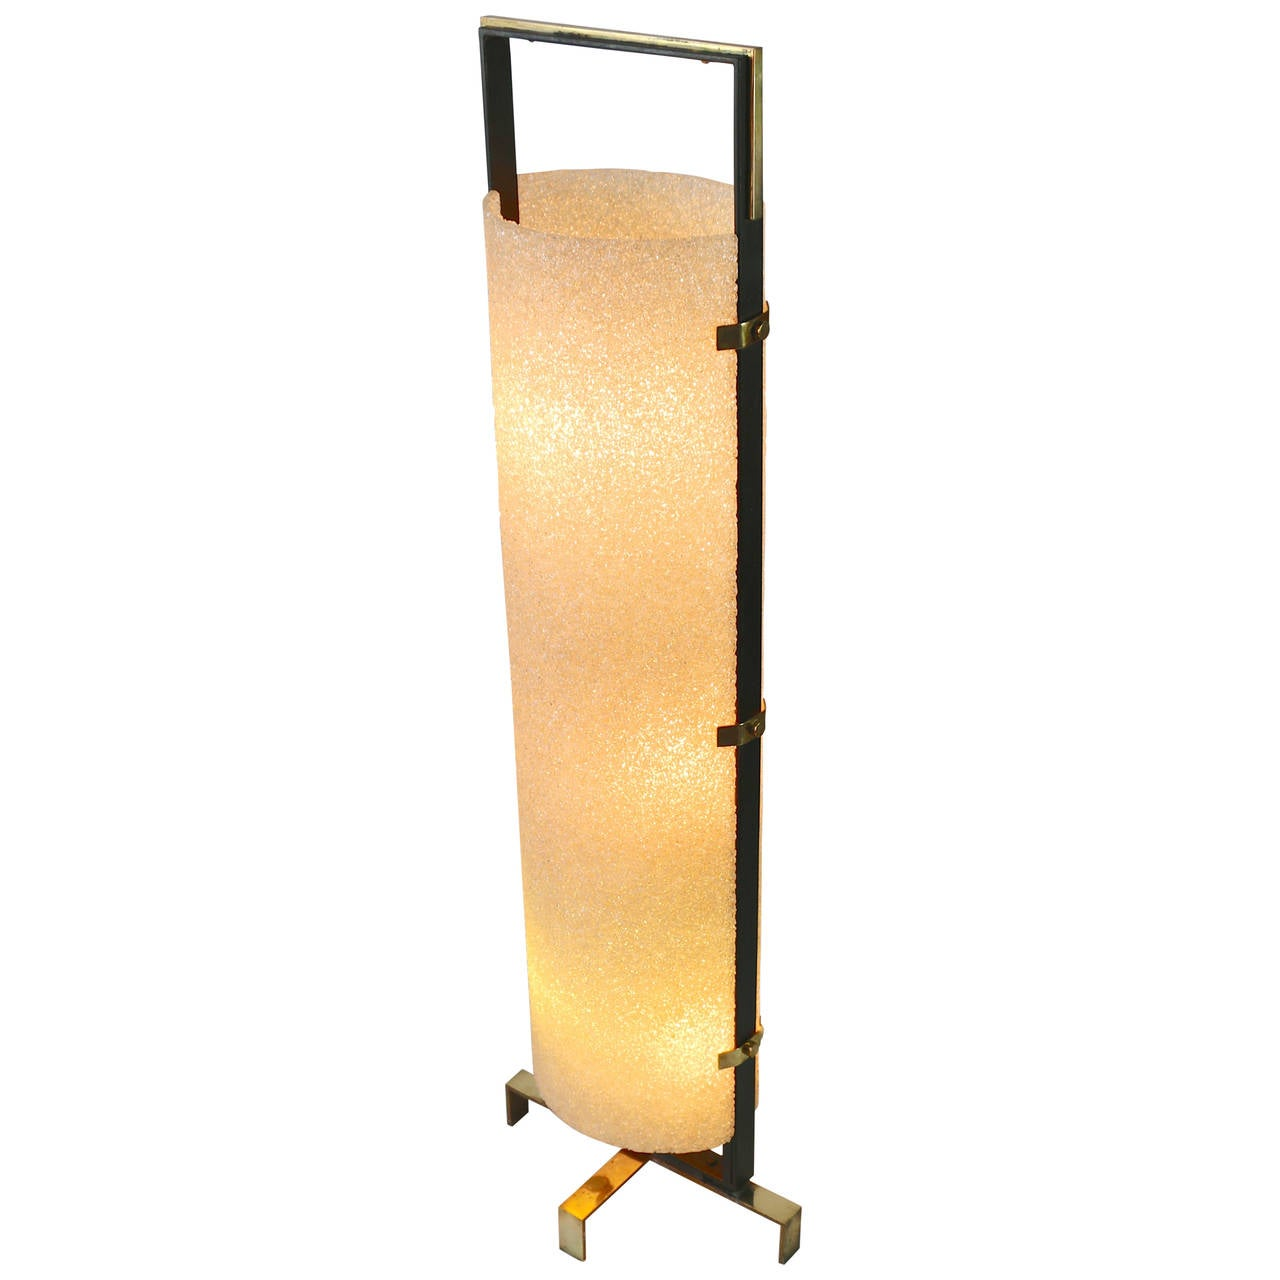 1970s honeycombed resin floor lamp for sale at 1stdibs for 1970s floor lamps